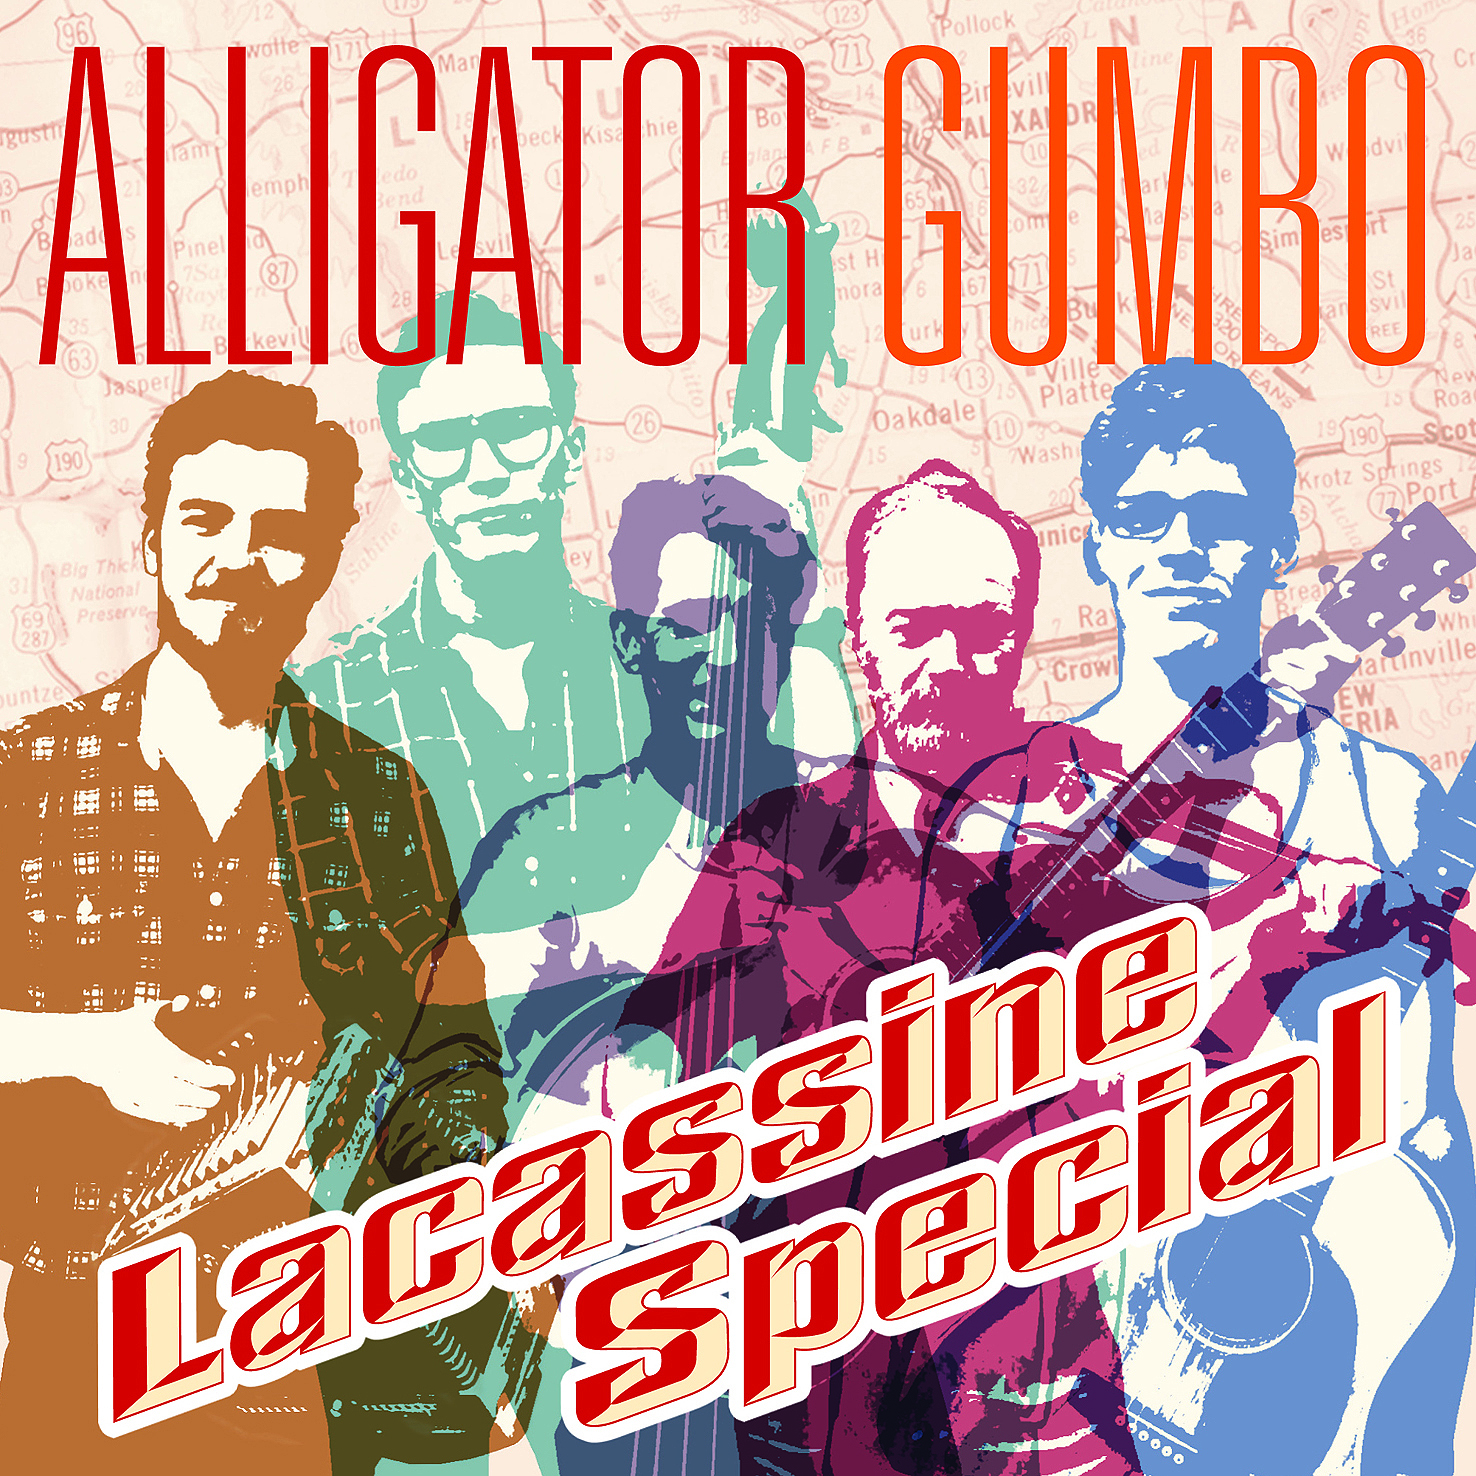 Alligator Gumbo – Lacassine Special. No longer available from us. Since Nov. 2014 distributed by Rootsy.nu Alligator Gumbo - Lacassine Special monophon MPHEP006, 2012.